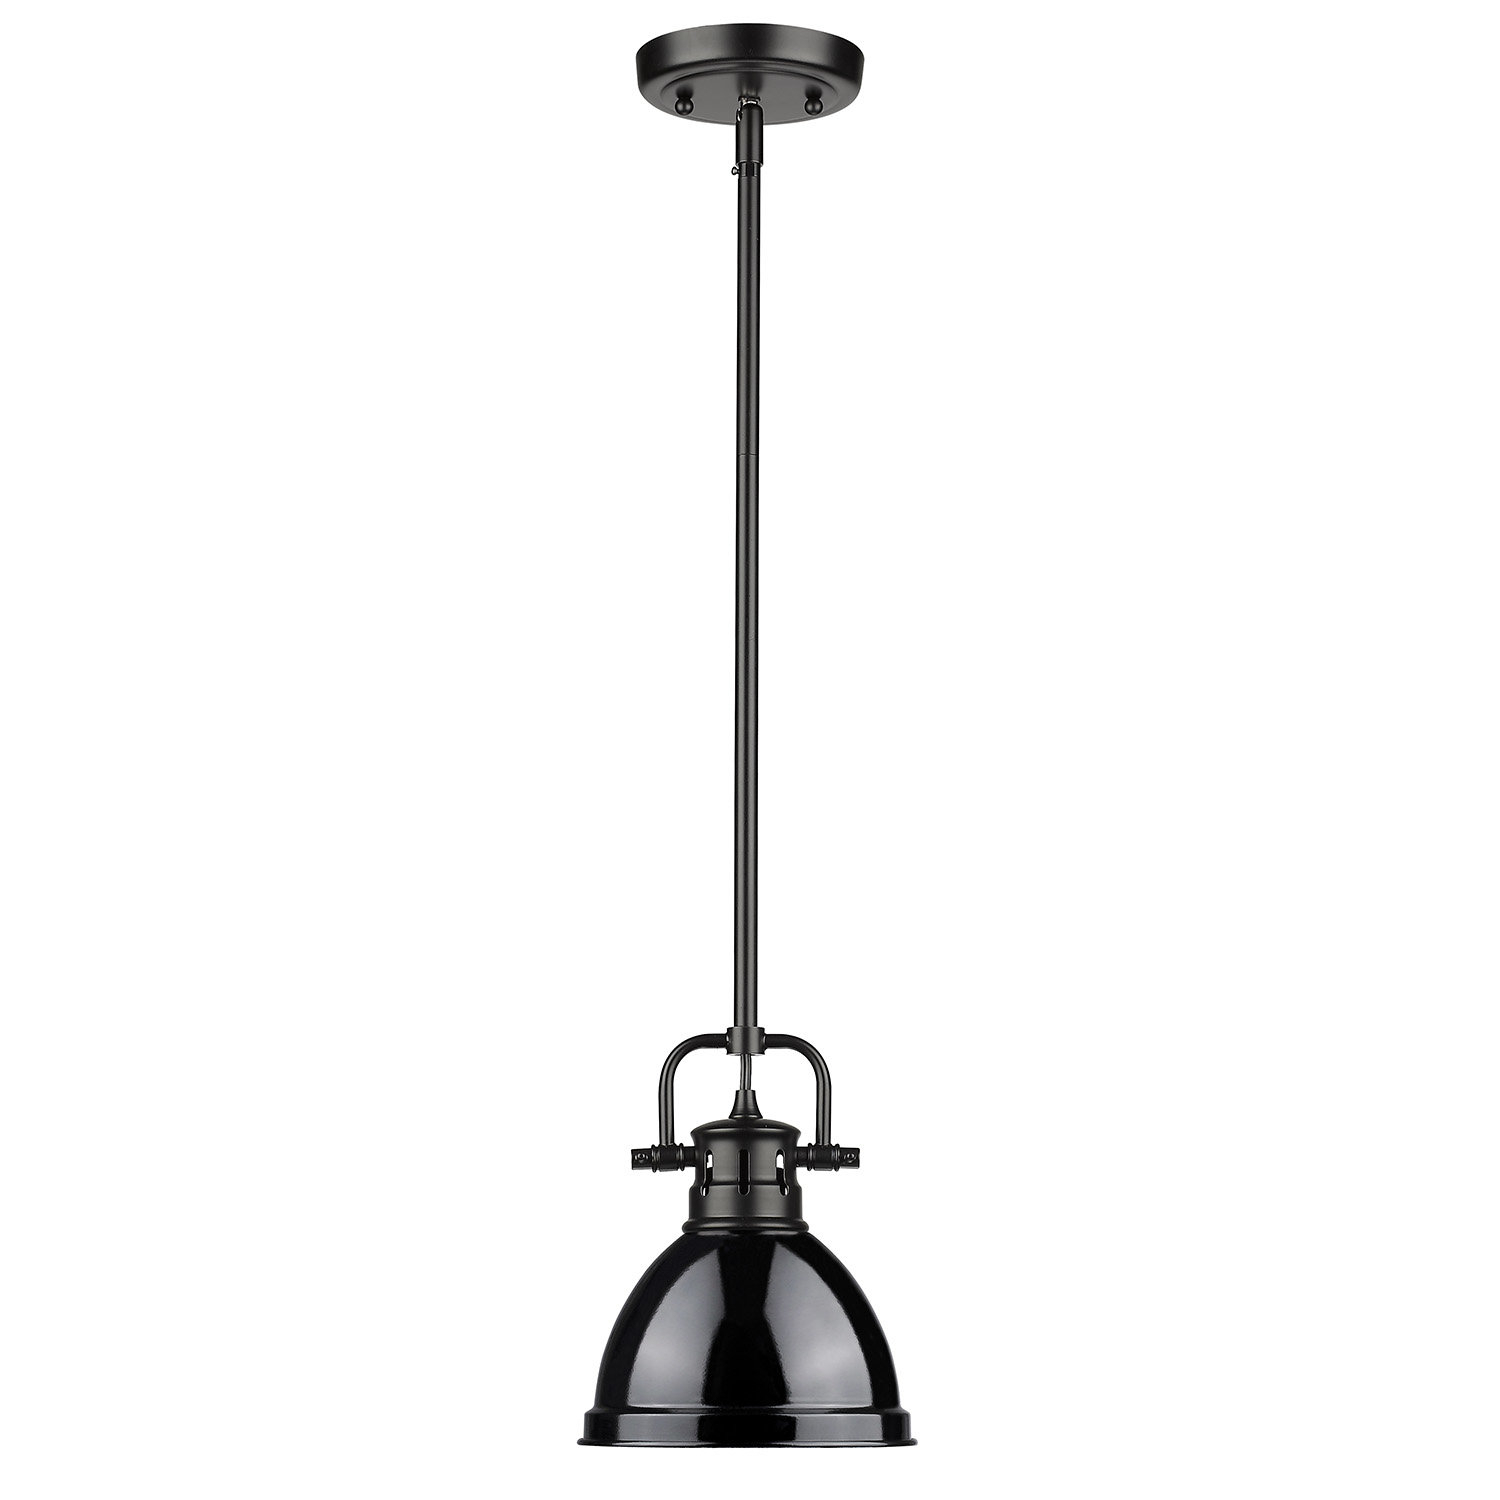 Bodalla 1 Light Single Bell Pendant Within Bodalla 1 Light Single Bell Pendants (View 2 of 30)